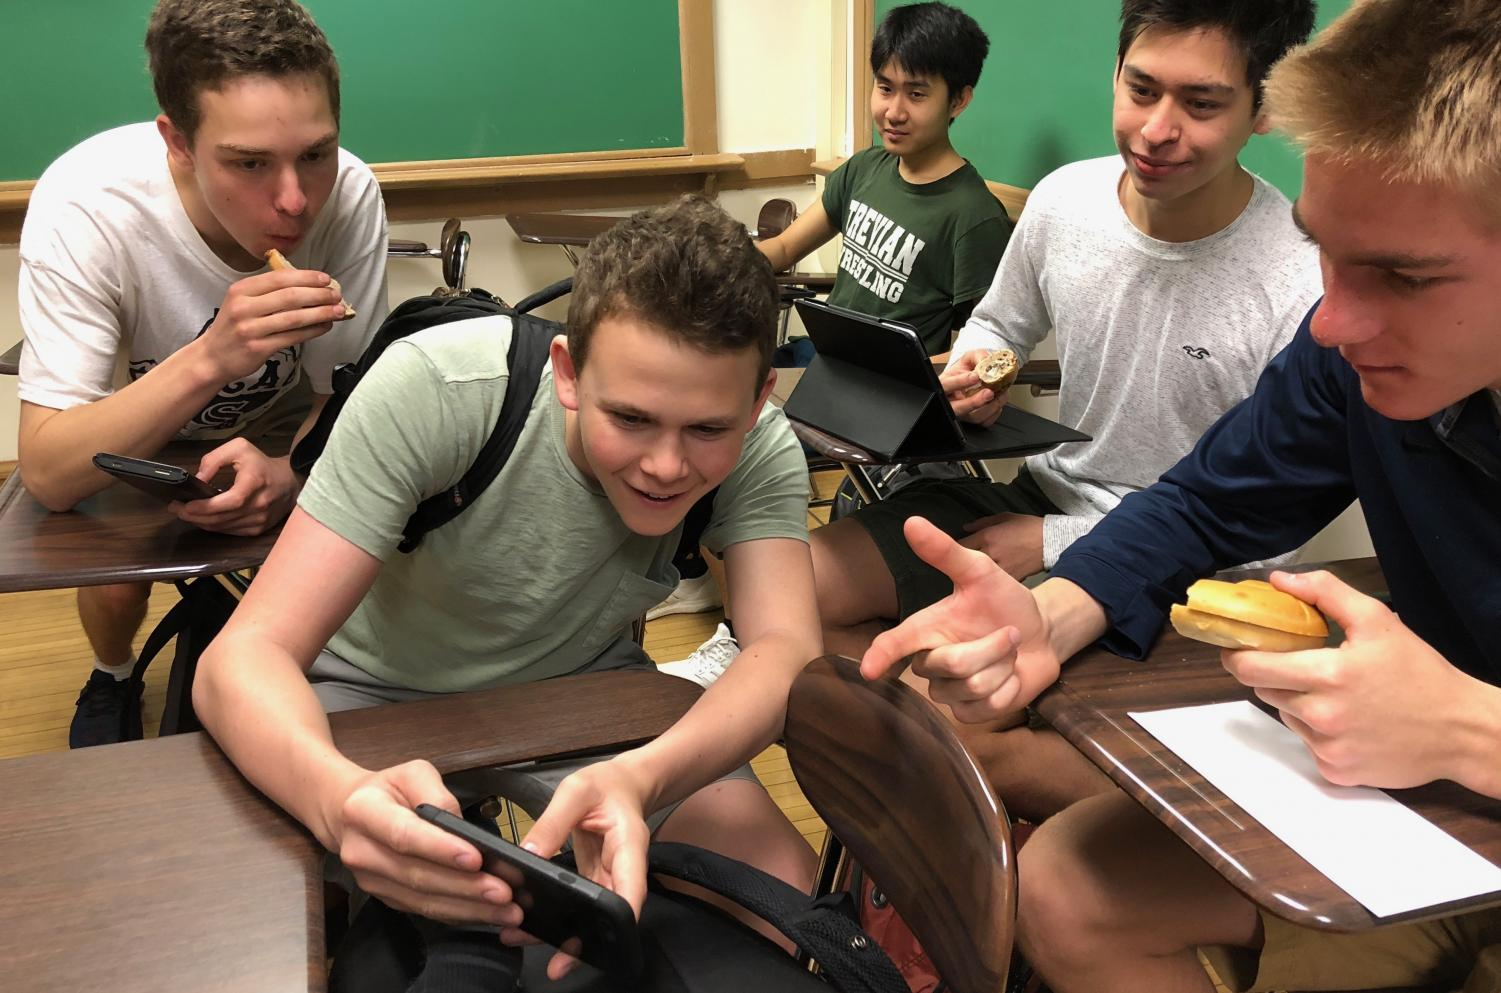 J. Keenan, T. Kamin, A. Kuhn, N. Lievano and N. Thammavijitdej share a laugh over a snapchat during advisery